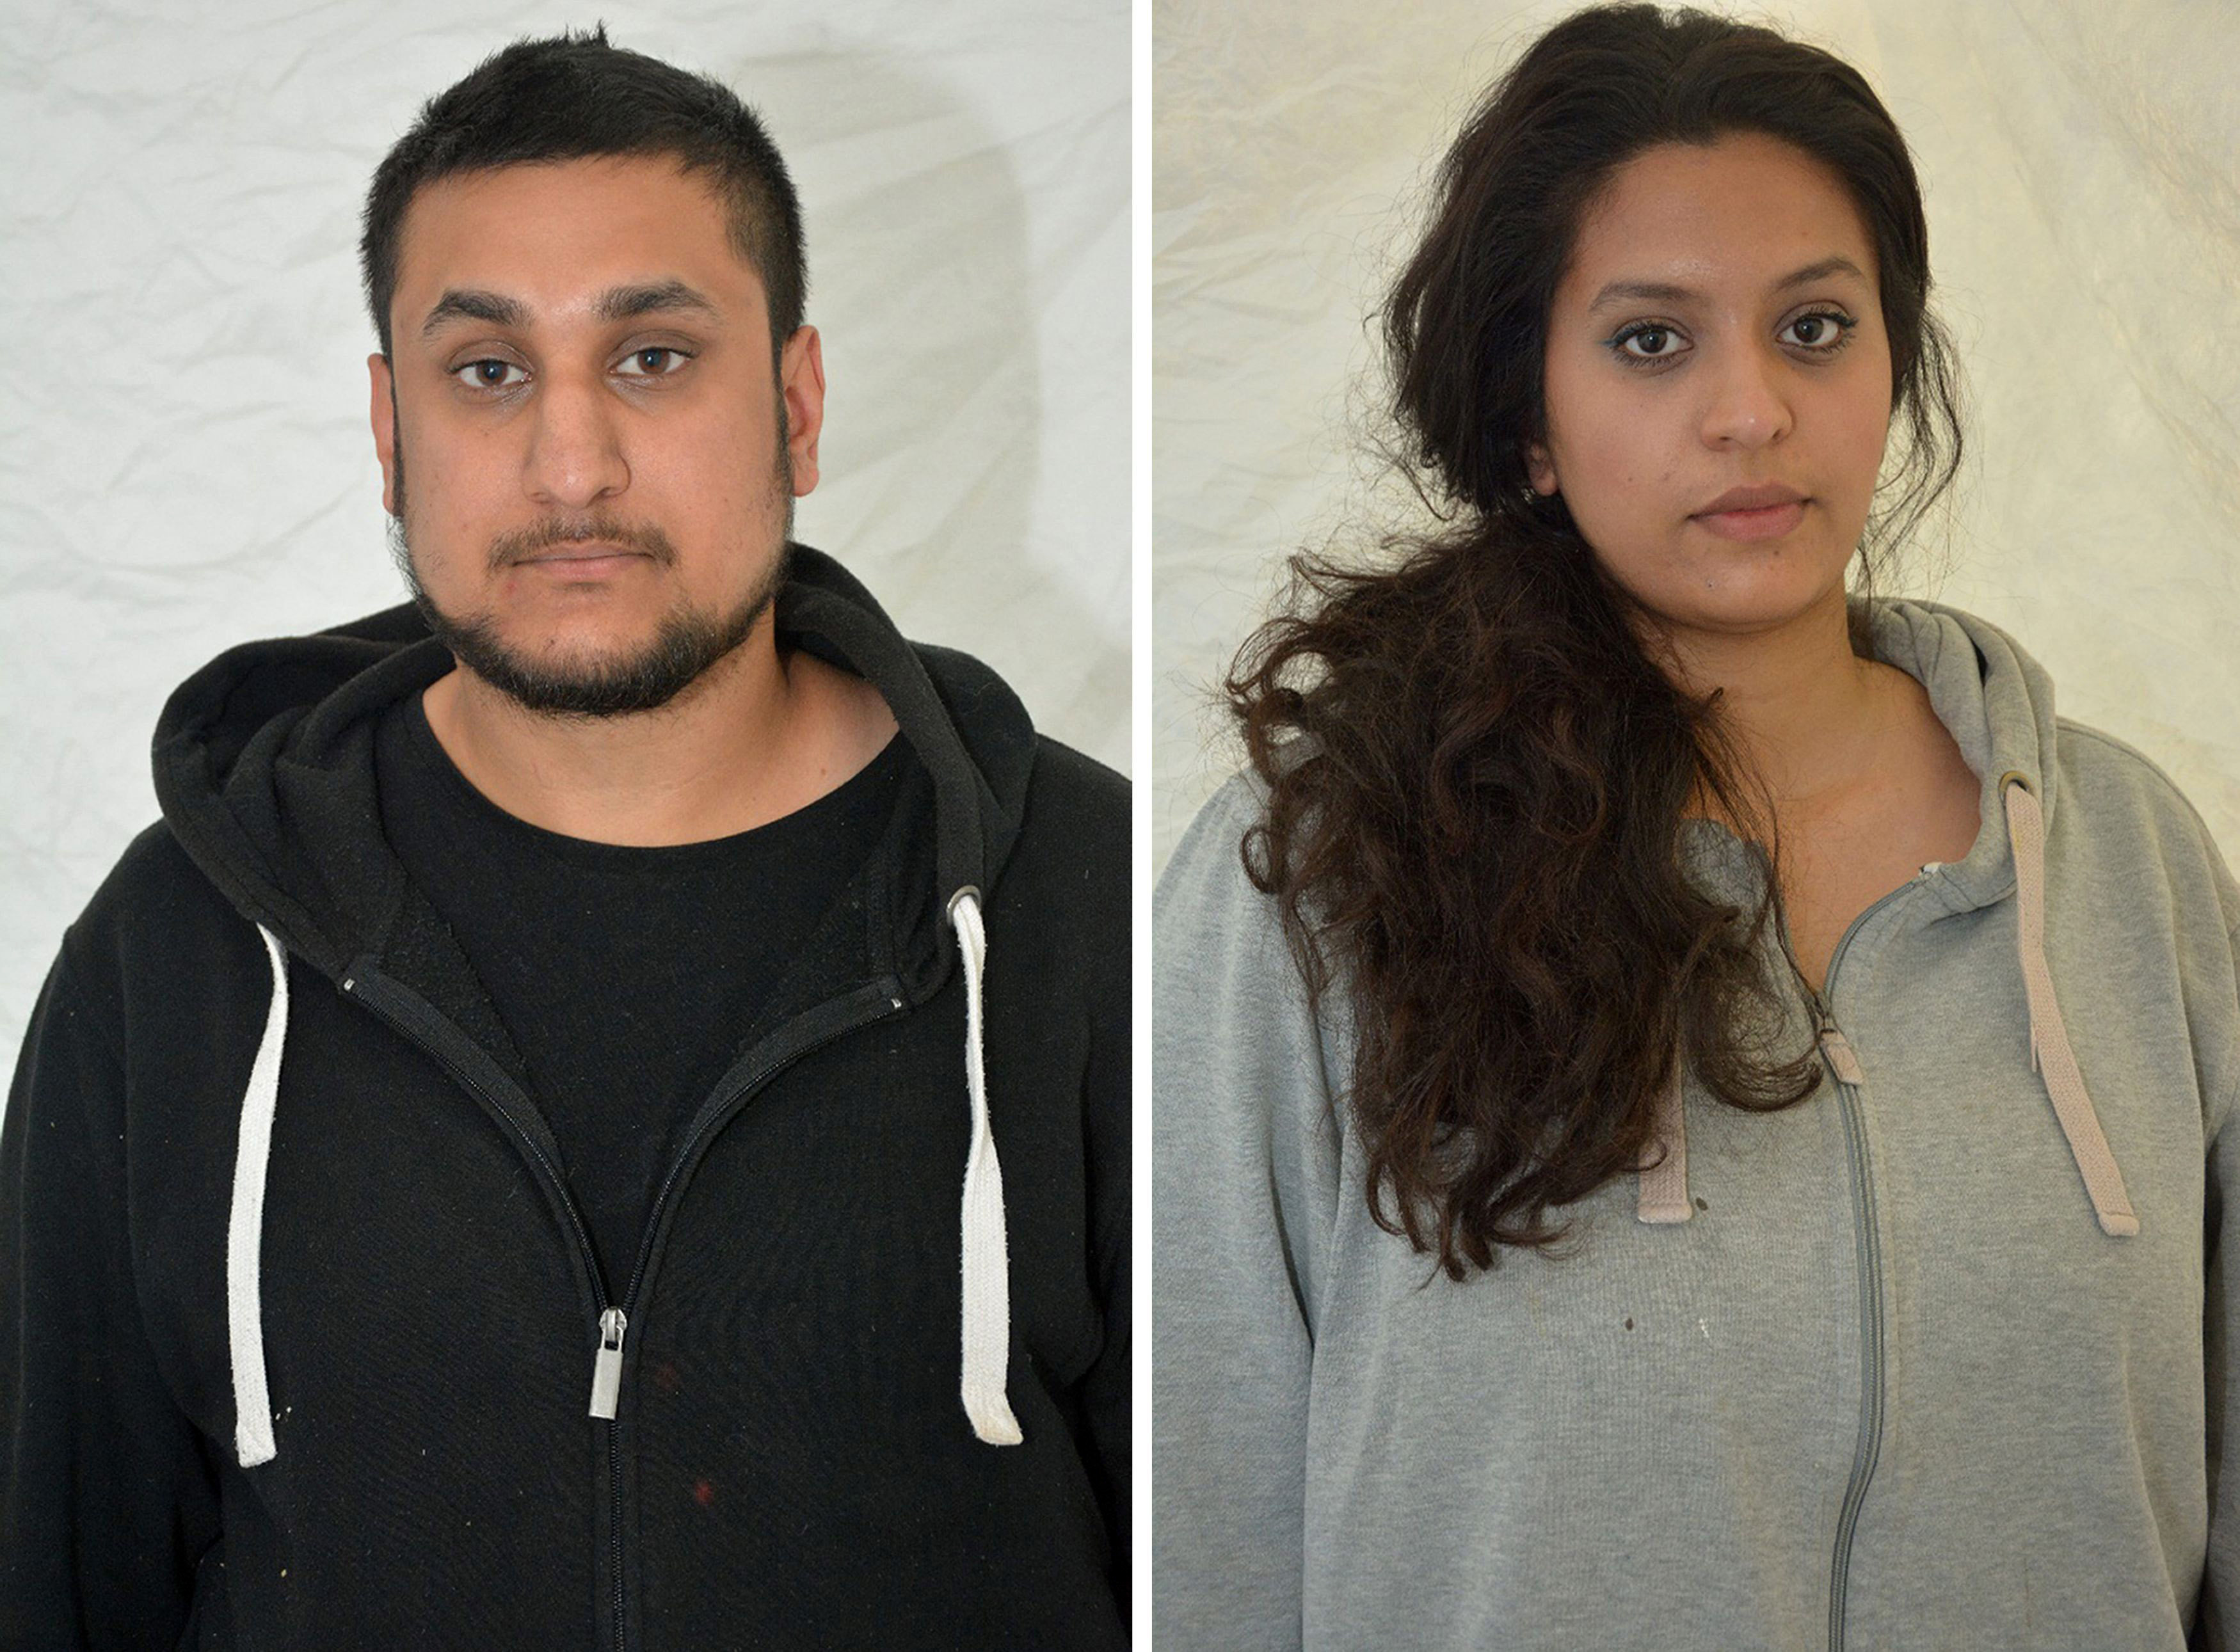 This photo provided by Thames Valley Police shows  Mohammed Rehman, left and his wife Sana Ahmed Khan. Photo: AP